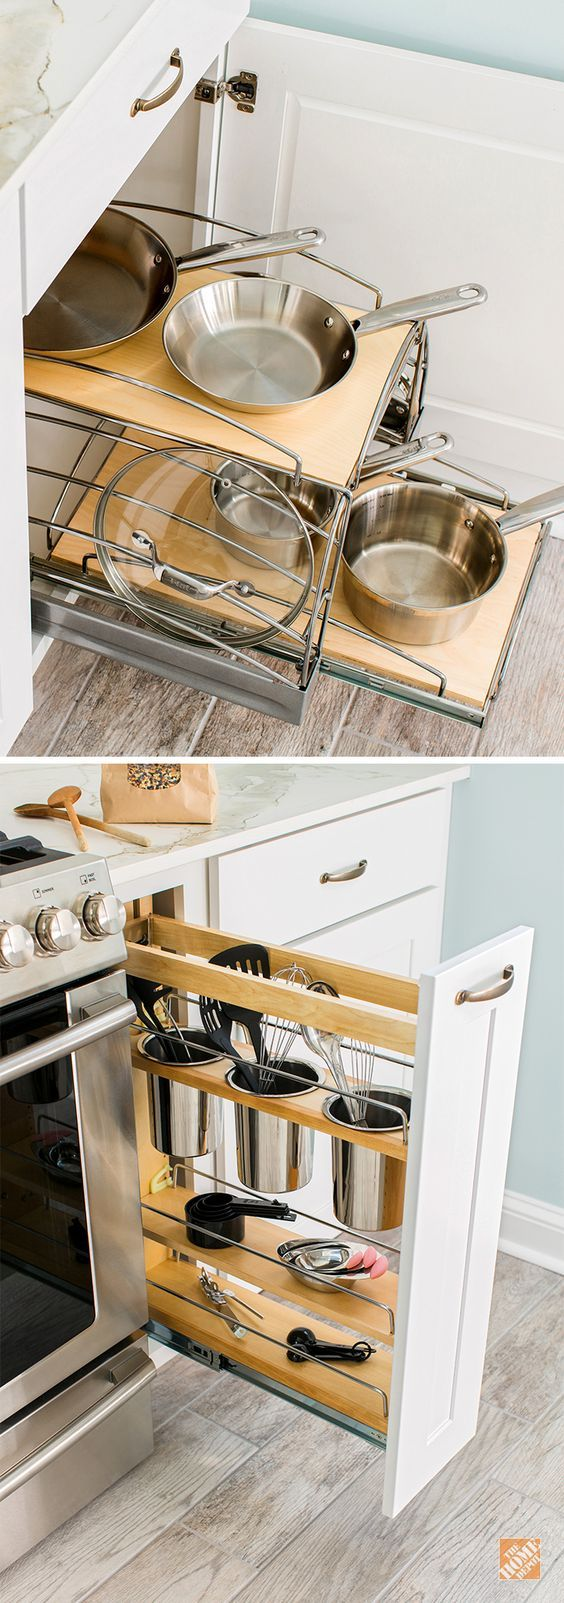 Check out these terrific kitchen storage solutions! These space savers for pots and pans and kitchen utensils are just two possibilities when you install custom cabinets by Thomasville. See more about how The Home Depot can help you create your dream kitchen. #manchesterwarehouse